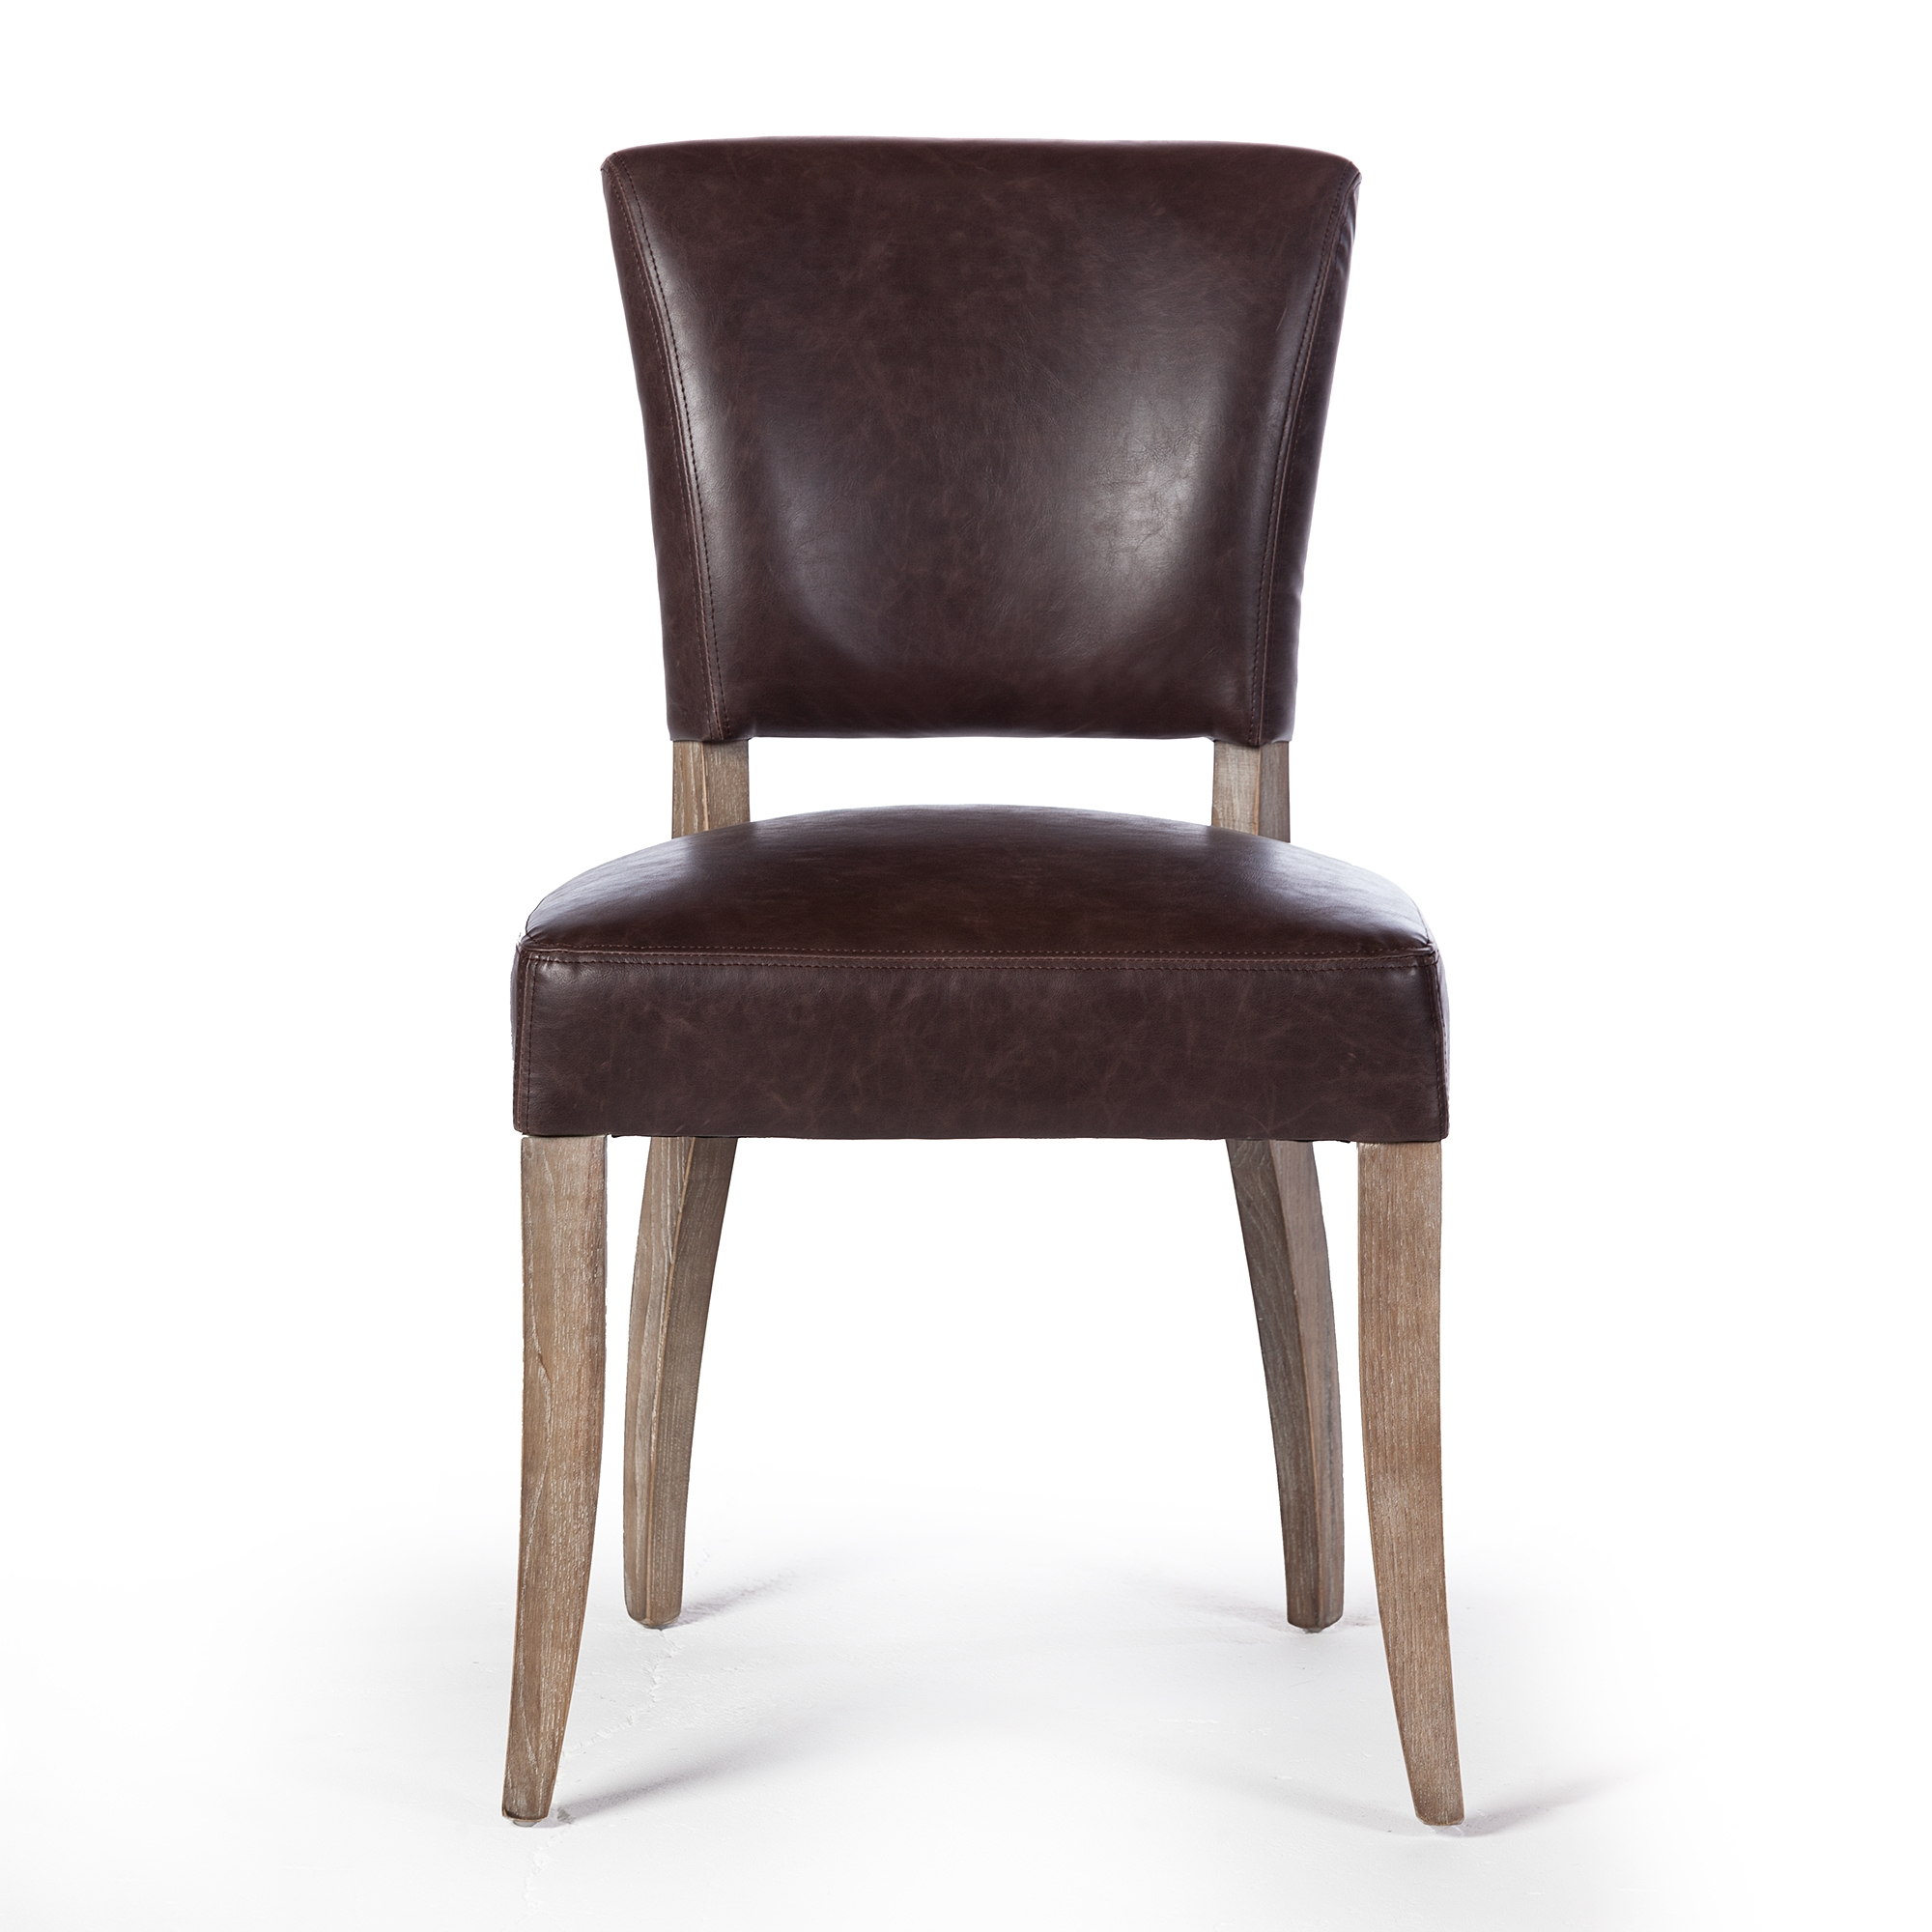 Admirable Adele Leather Side Chair In Vintage Brown Machost Co Dining Chair Design Ideas Machostcouk